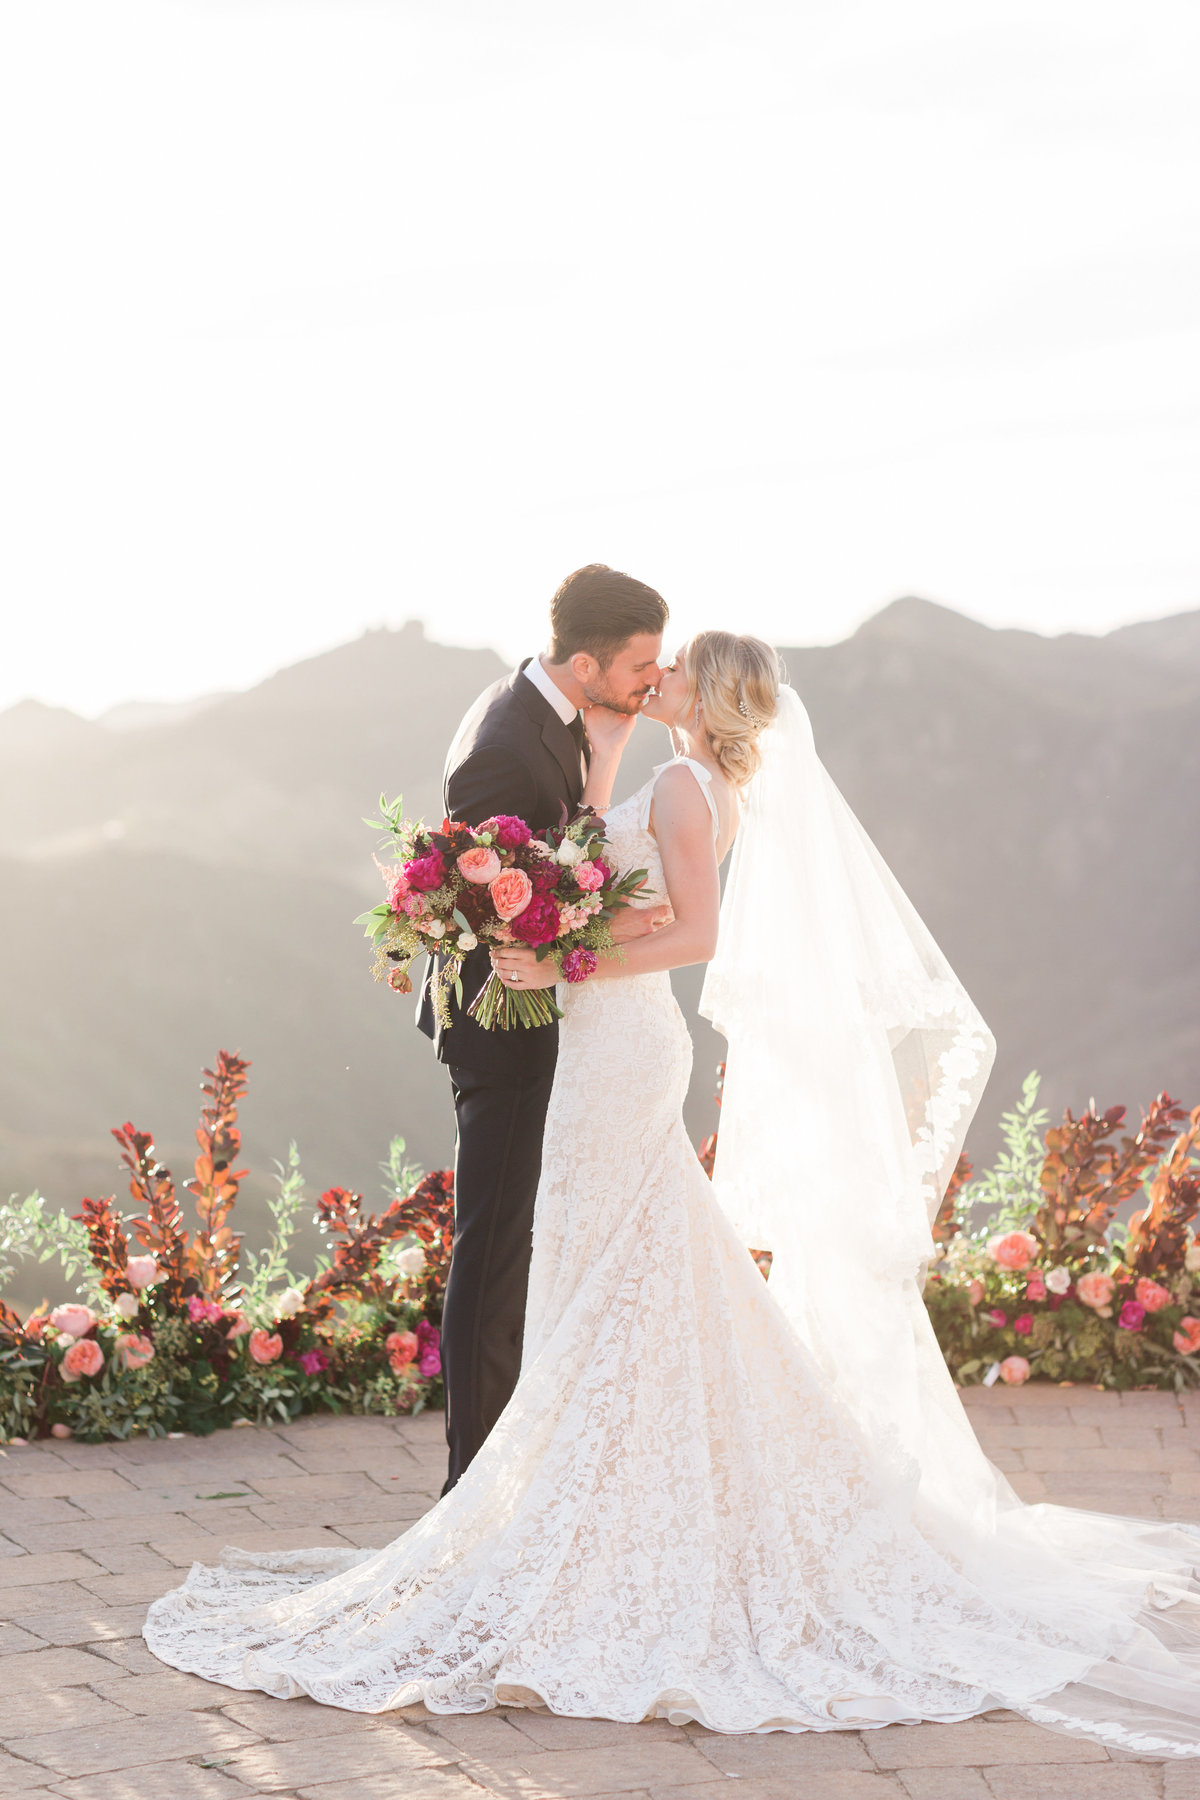 Malibu_Rocky_Oaks_Wedding_Inbal_Dror_Valorie_Darling_Photography - 116 of 160